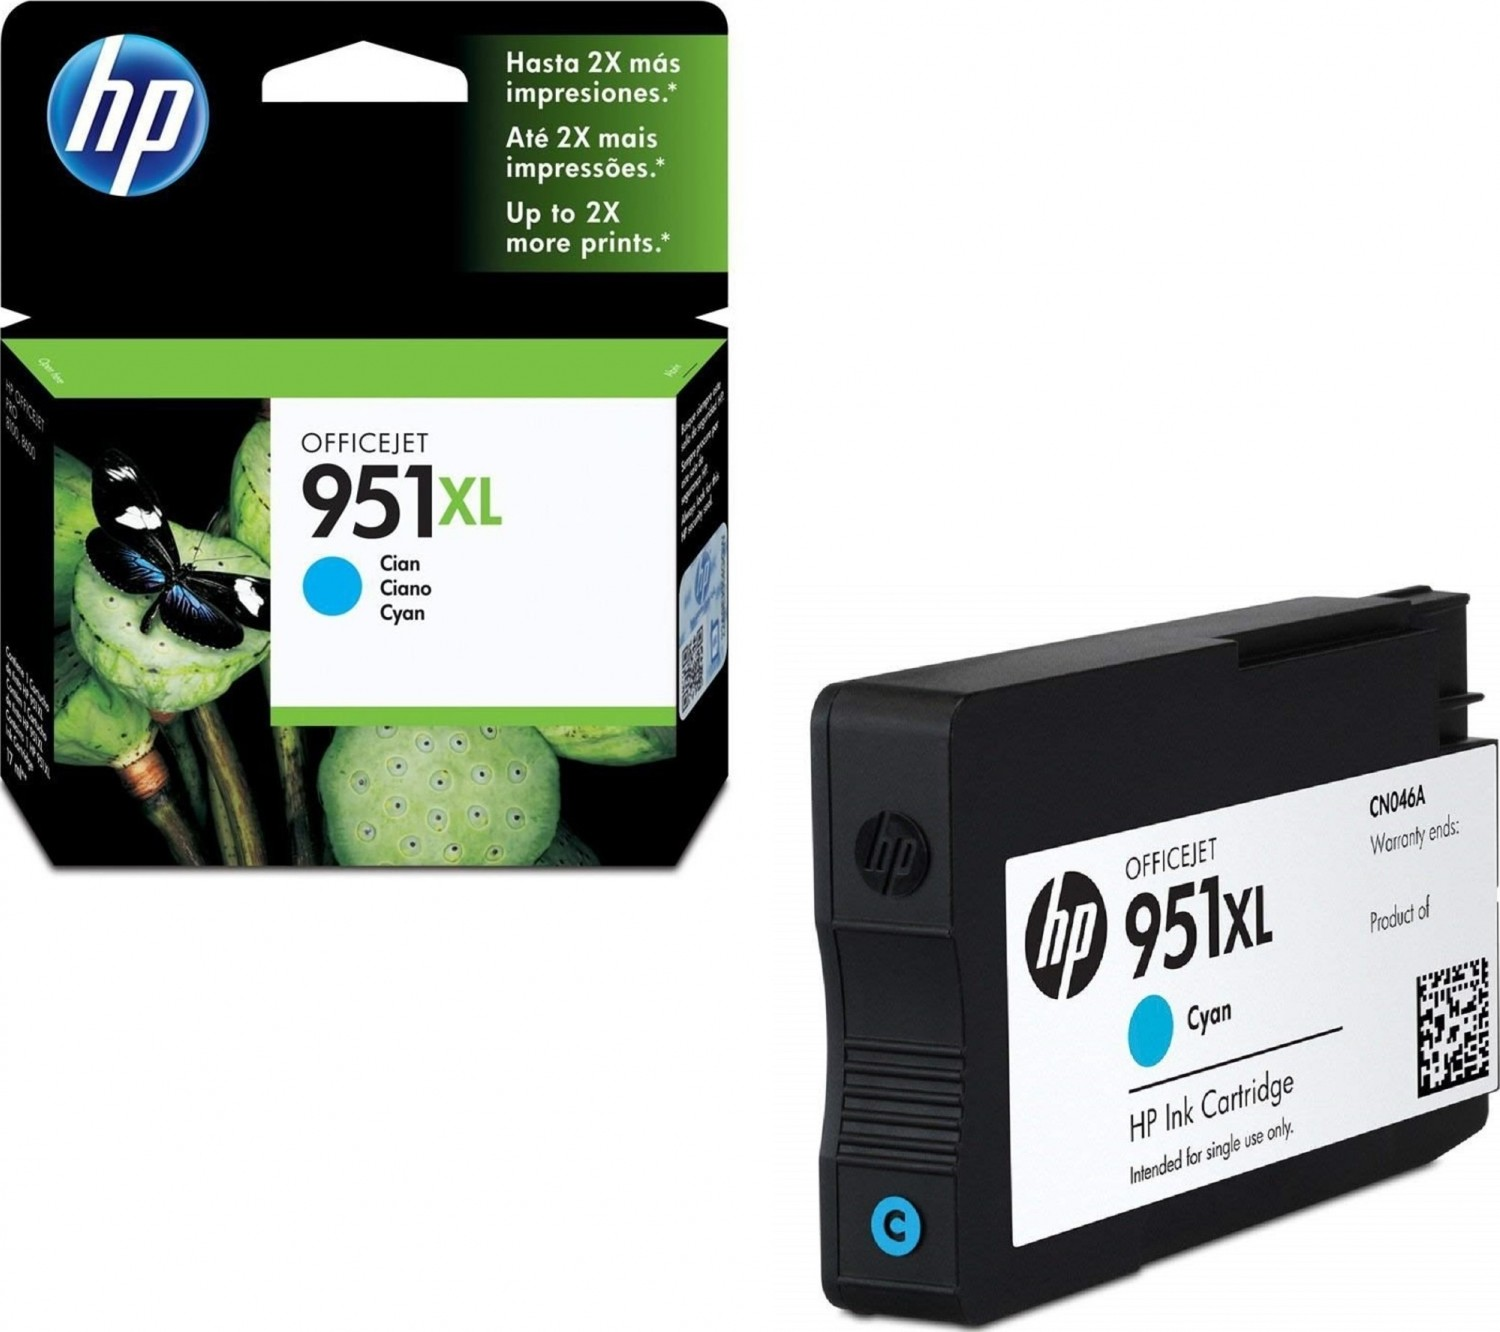 خرطوشة حبرhp HP 951XL High Yield Cyan Ink Cartridge - CN046AE لون سماوي